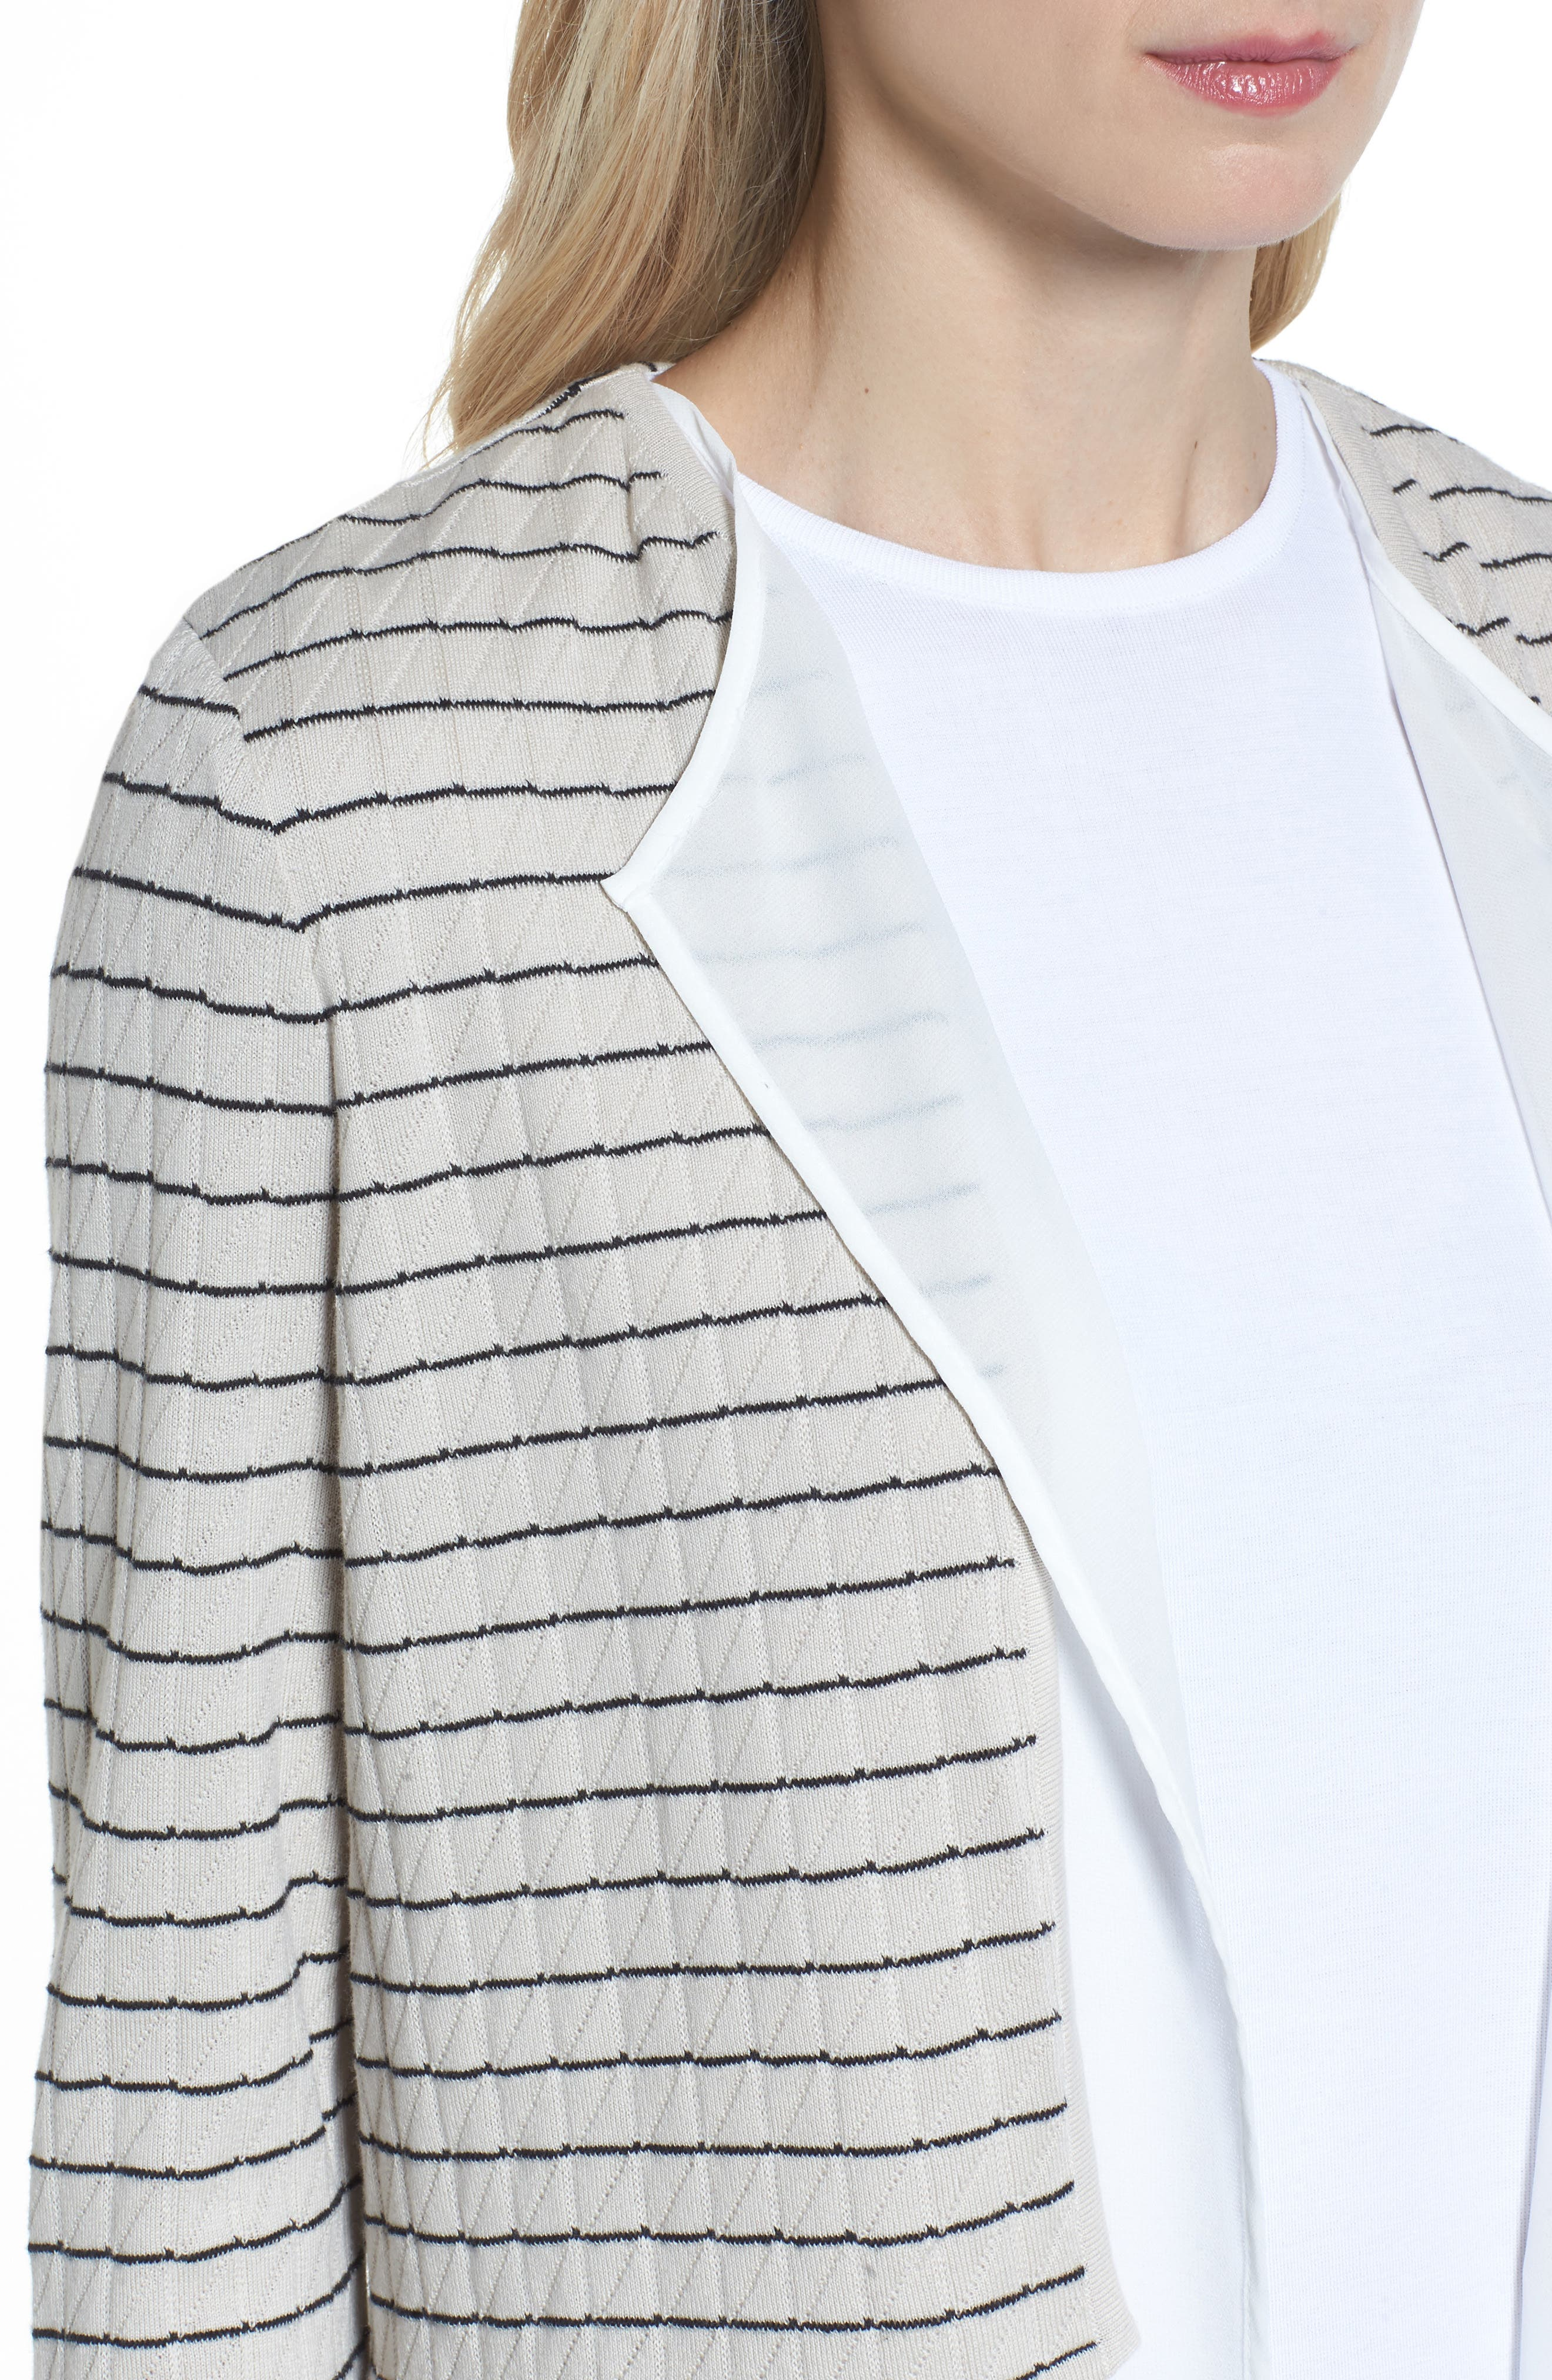 Layered Look Knit Jacket,                             Alternate thumbnail 4, color,                             Almond Beige/ Black/ White